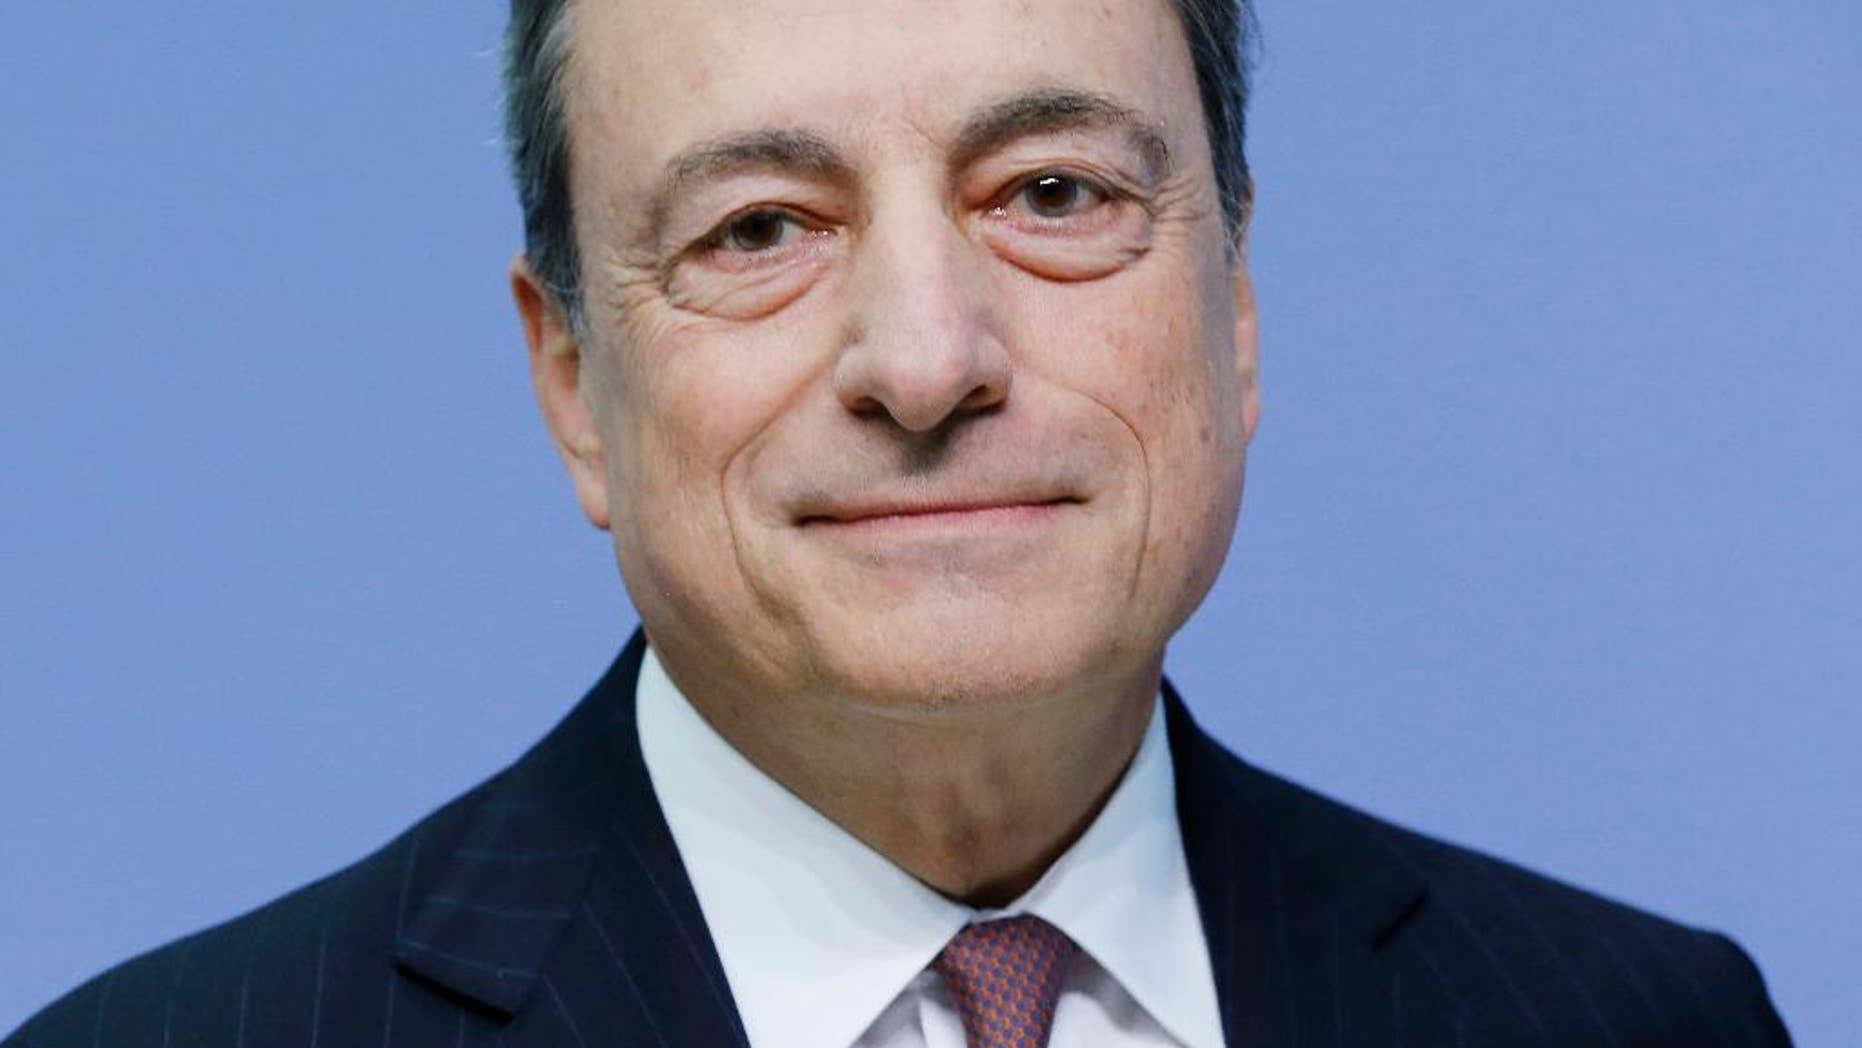 President of European Central Bank Mario Draghi poses prior to a news conference in Frankfurt, Germany, Thursday, Sept. 8, 2016, following a meeting of the ECB governing council. (AP Photo/Michael Probst)